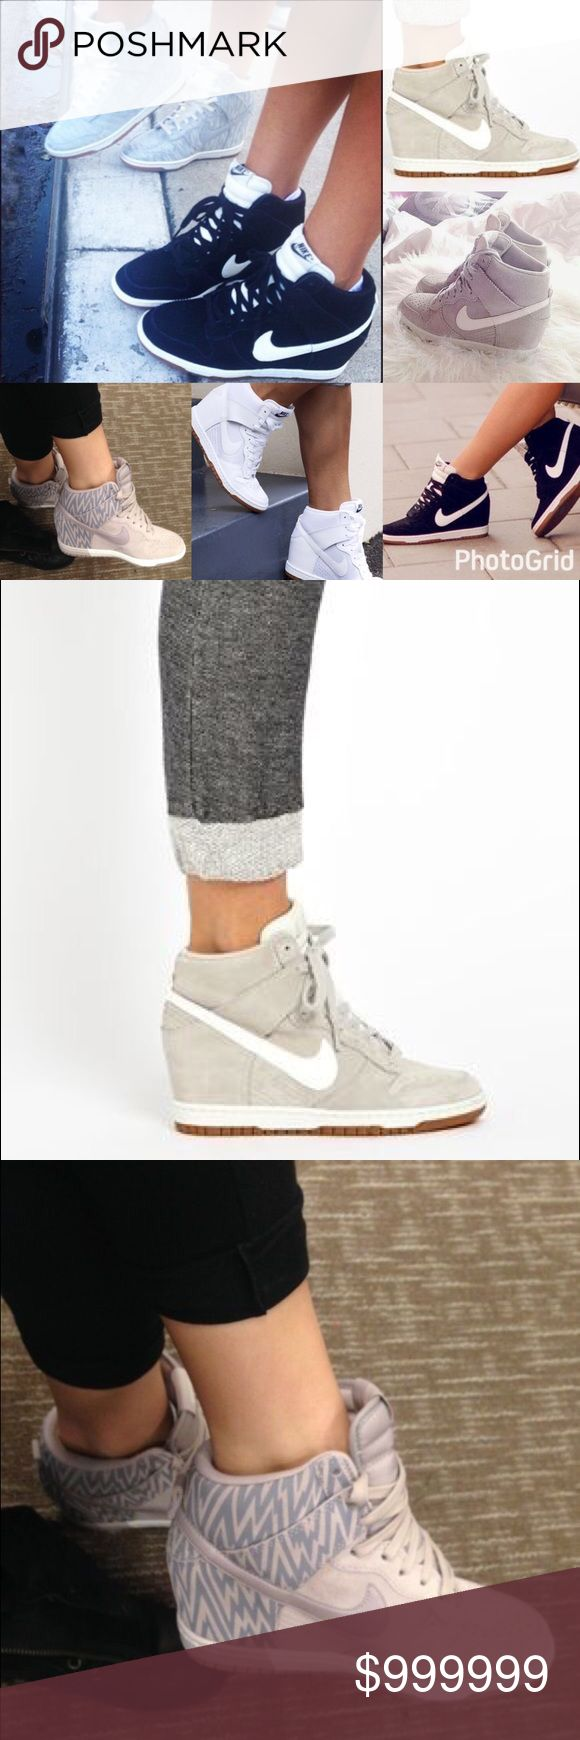 ISO‼️ ANY NIKE SKY HI DUNK WEDGE SNEAKERS IN SEARCH OF 🔎 Ladies please help! I am looking for NIKE SKY HI DUNK WEDGE SNEAKERS in ANY OF THE COLORS/STYLES above. I have searched far and wide for these shoes. I am a SIZE 6 or 6.5. Please tag me or comment if you know where to find ANY OF THESE IN GRAY, WHITE, or BLACK. Thank you so much!! Nike Shoes